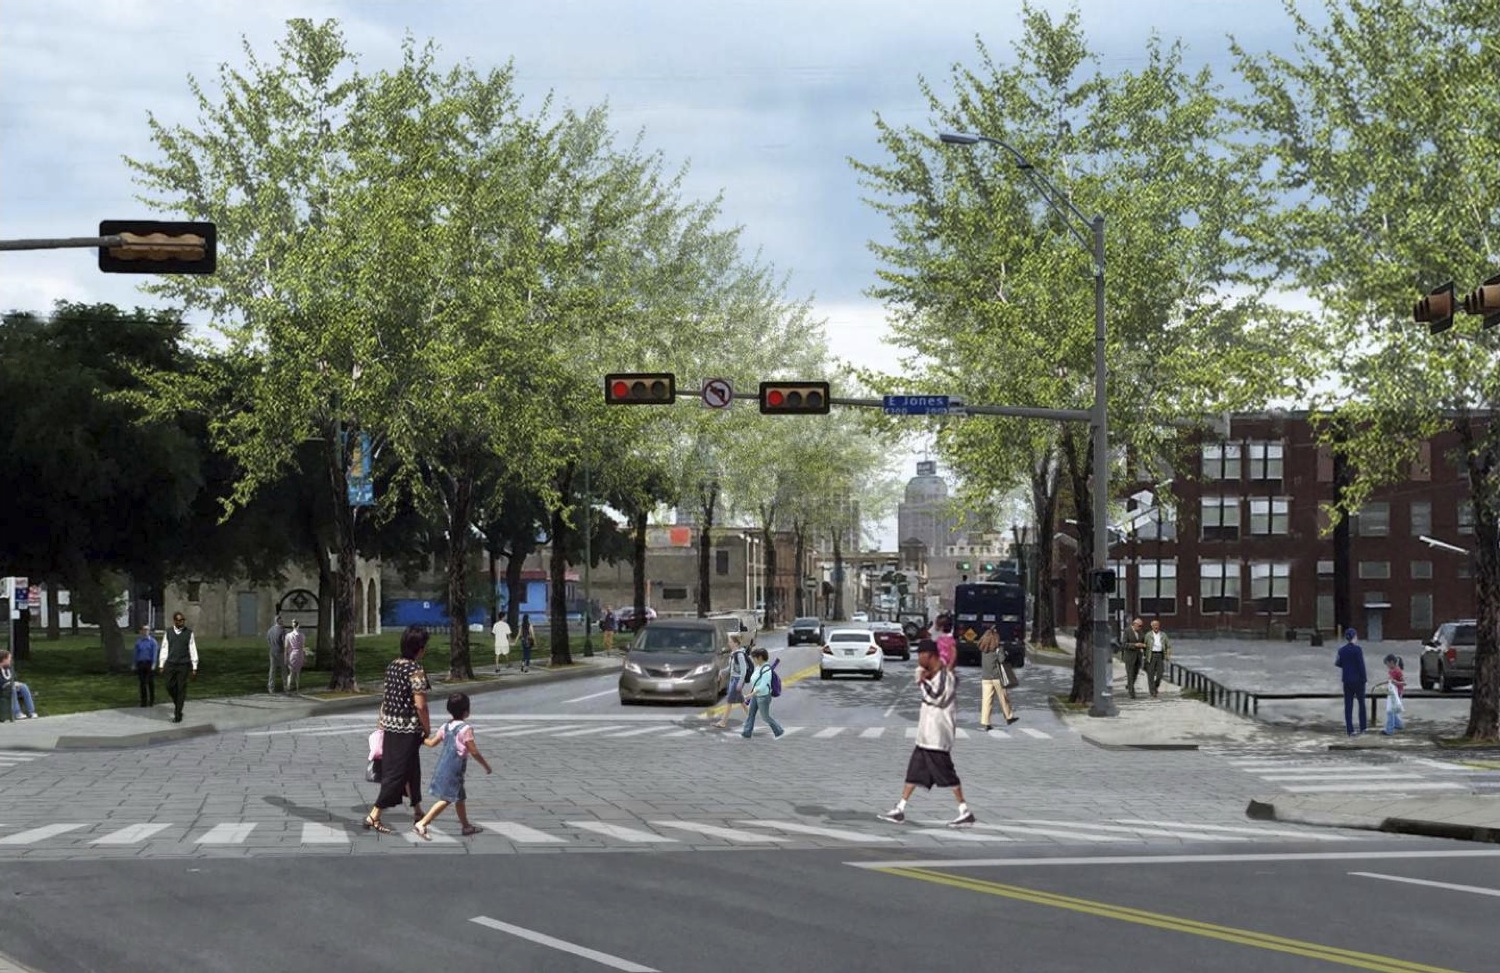 Preliminary rendering of what could be on Broadway Street at Jones Avenue (near the San Antonio Museum of Art).